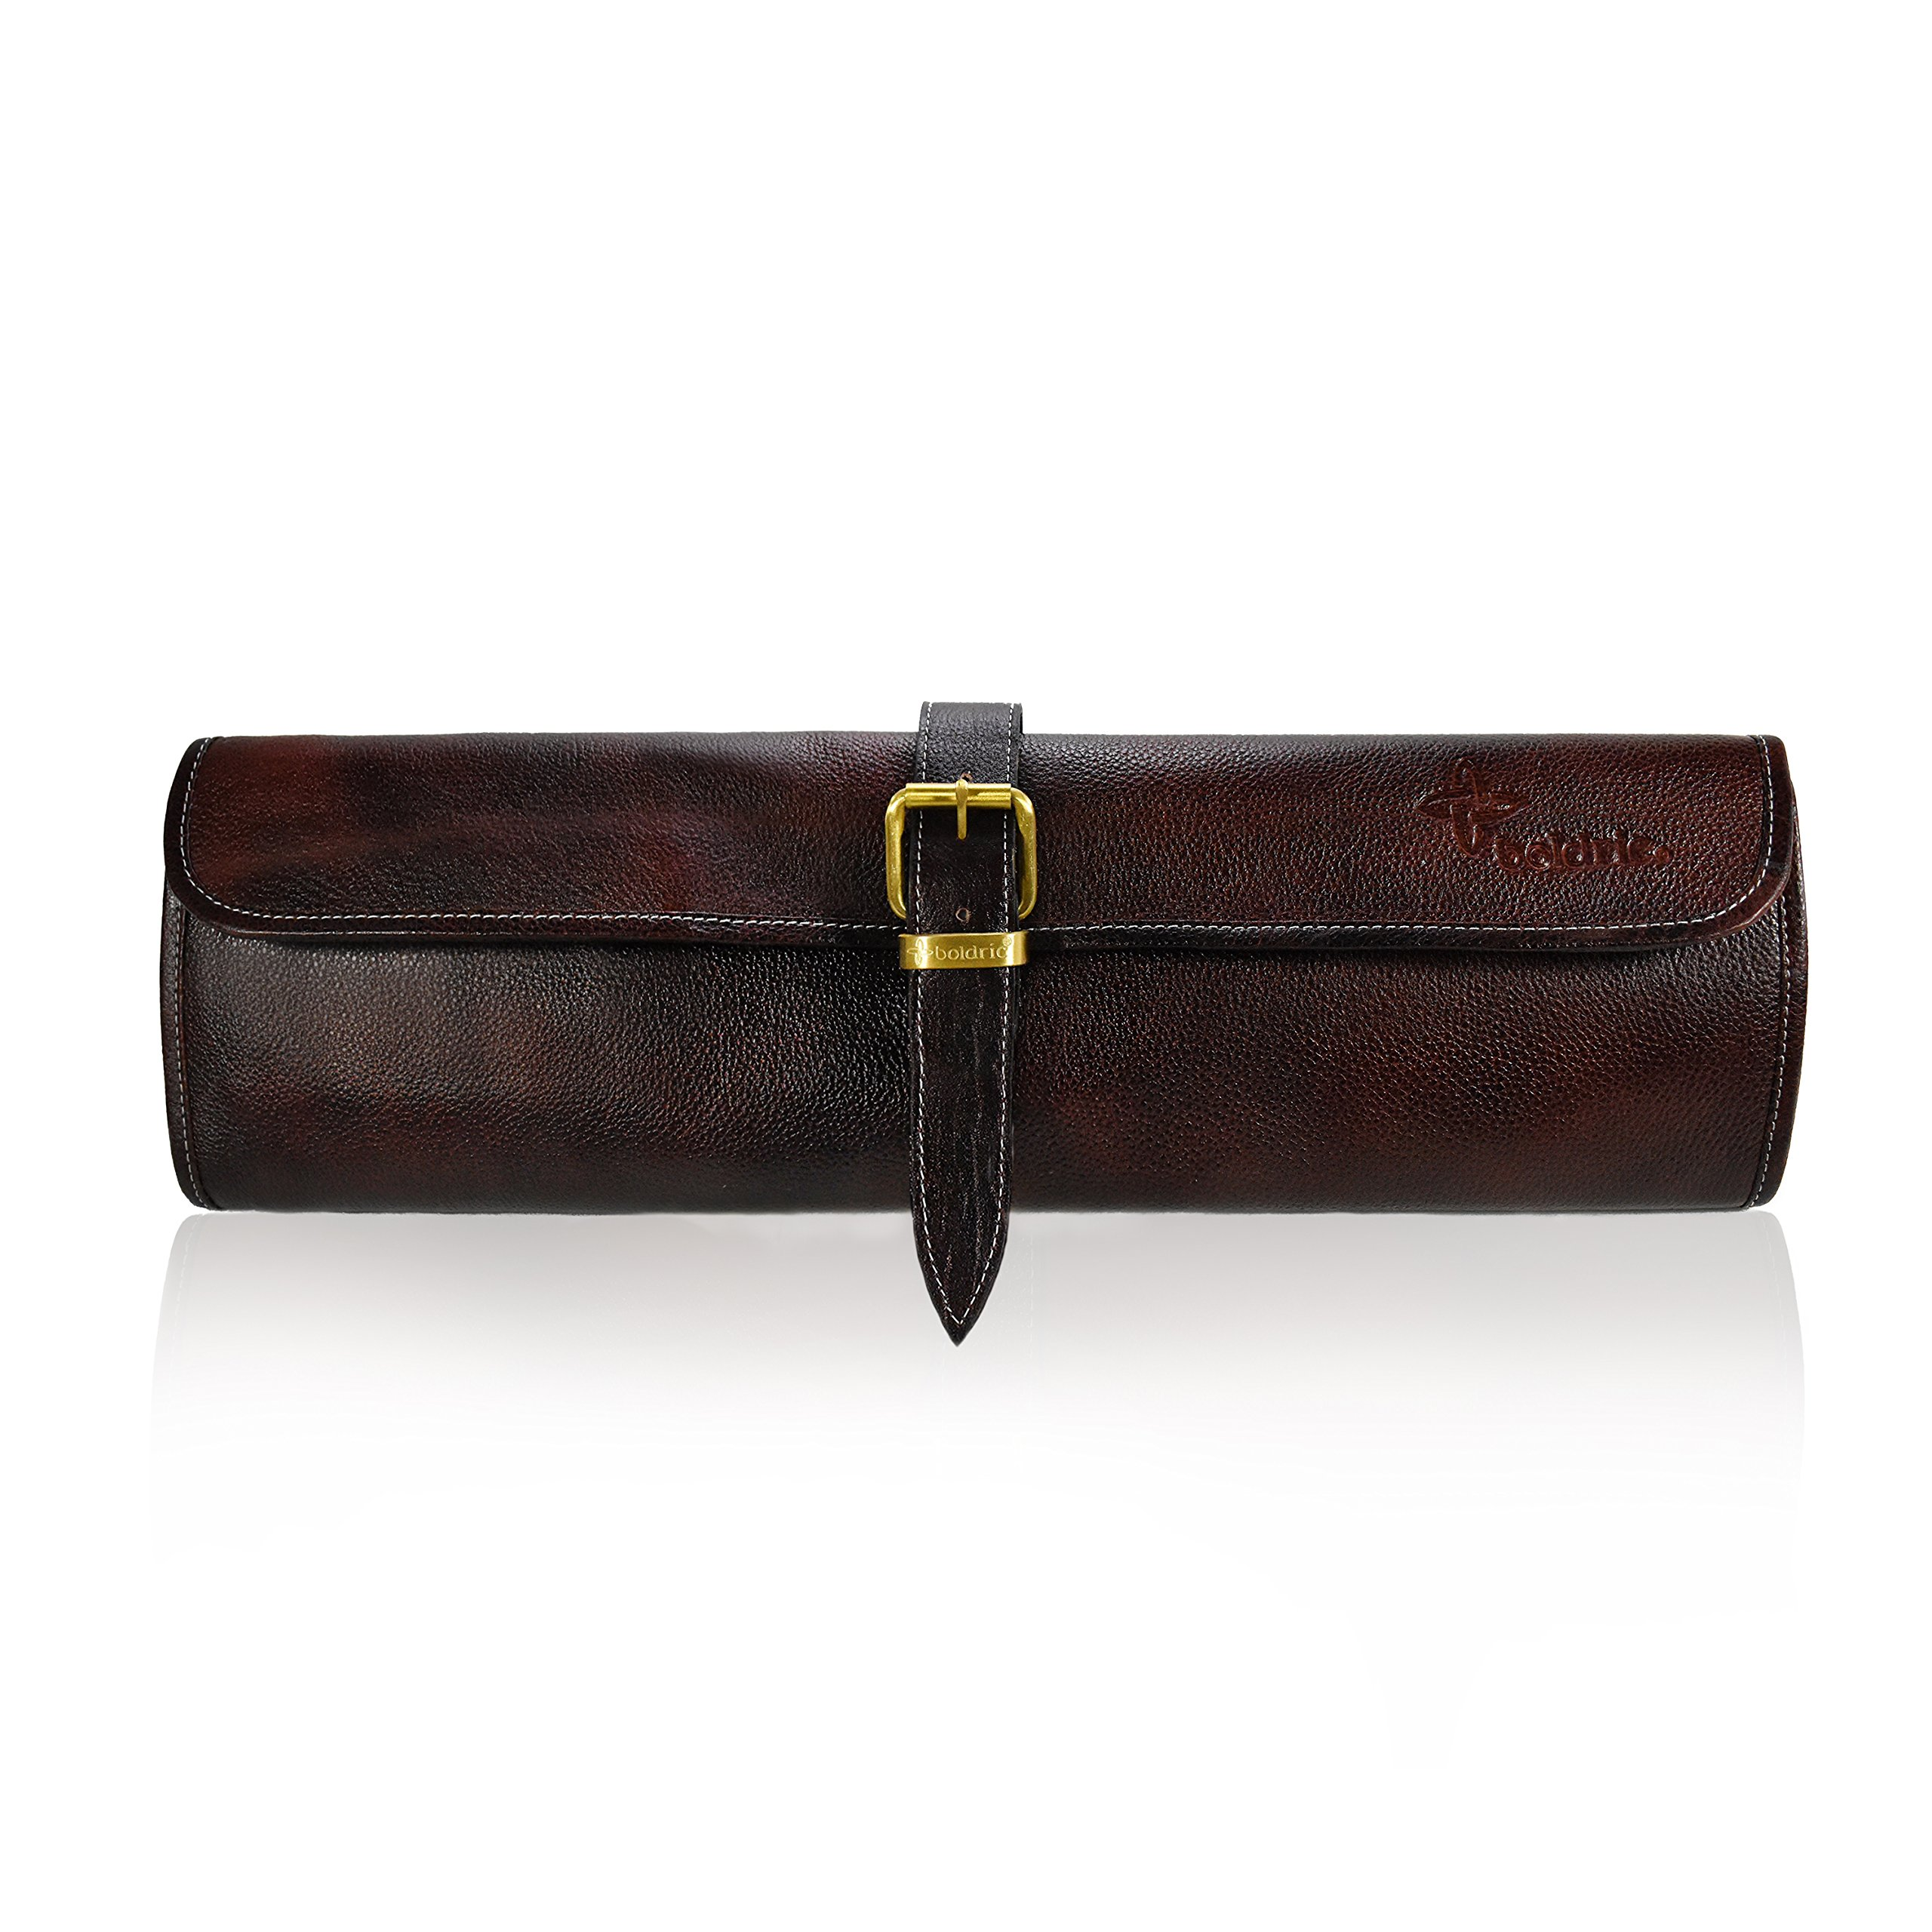 Boldric One Buckle Water Buffalo Leather Chef Knife Bag - Professional Grade Roll Travel Knife Case – 8 Tool Holder Slots For Knives Pens Pencils Spoons (Dark Brown)